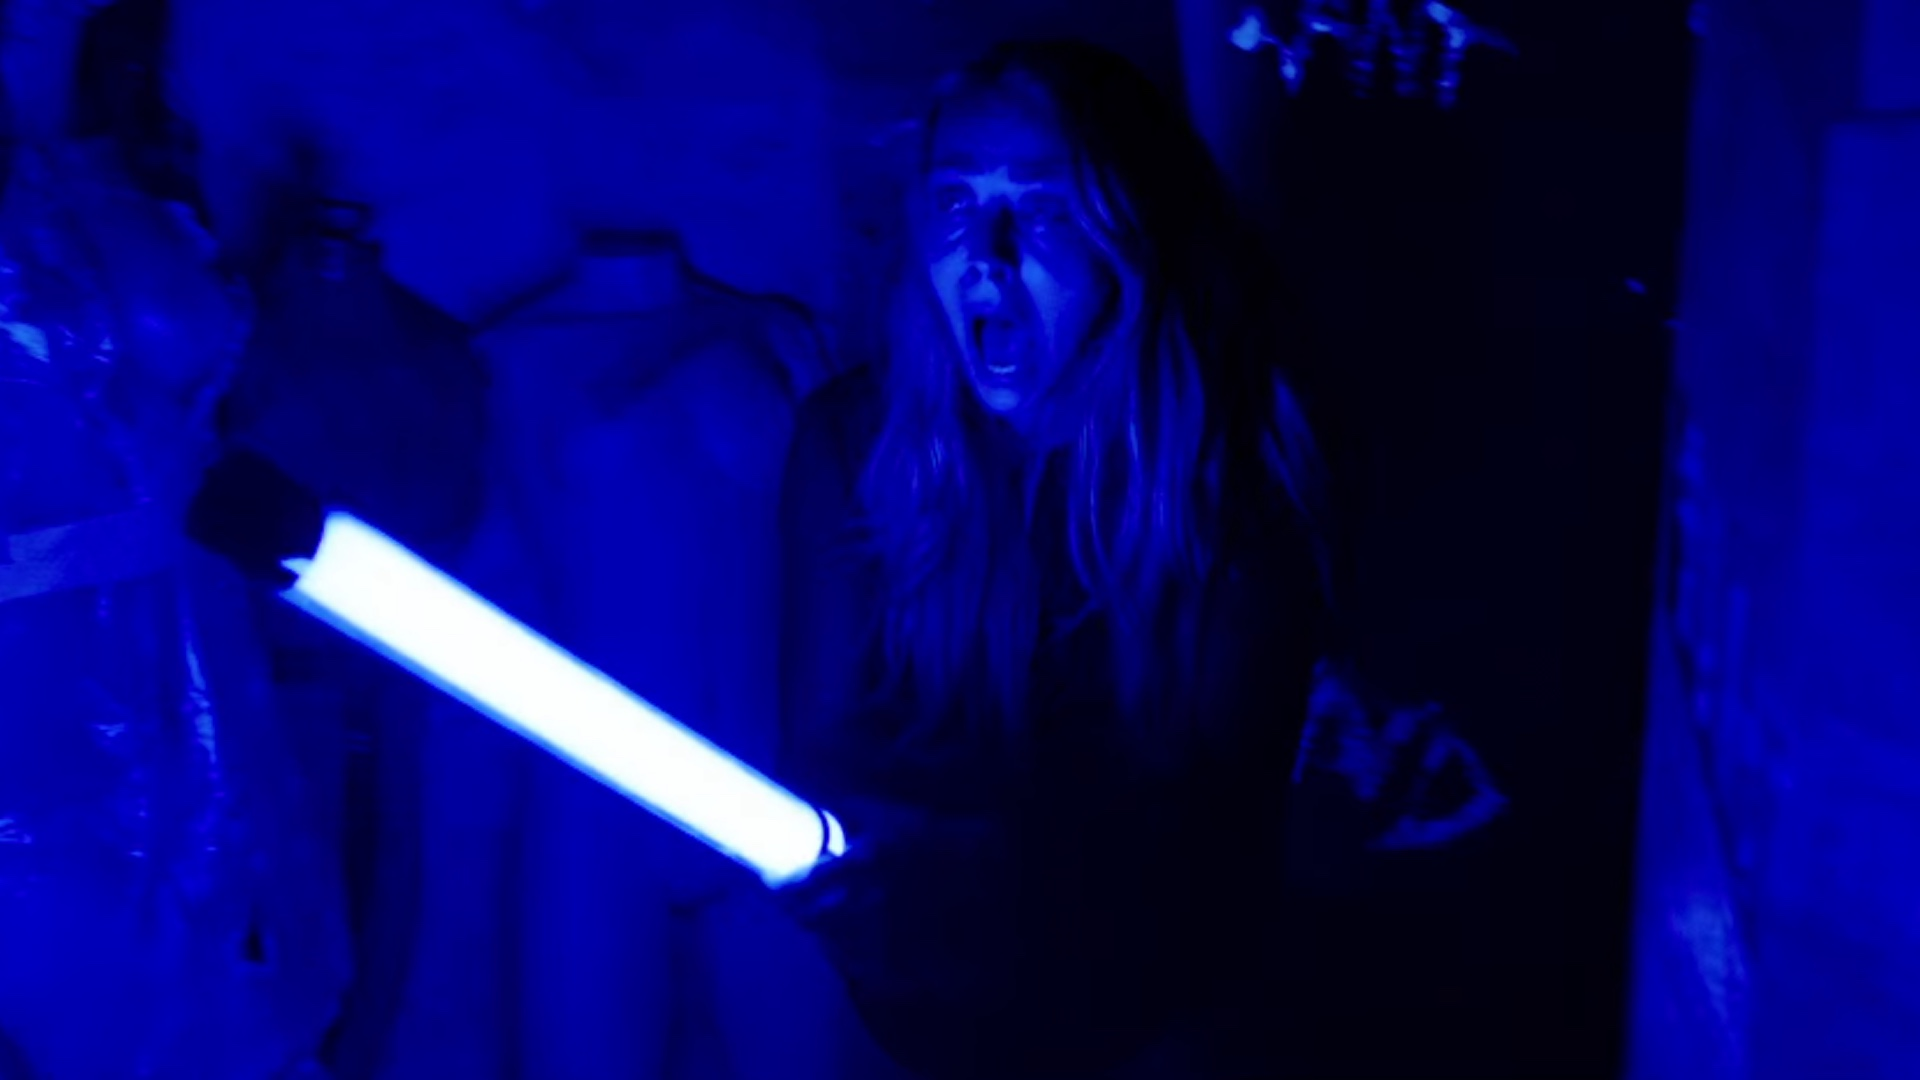 creepy-trailer-for-the-james-wan-produced-horror-thriller-lights-out